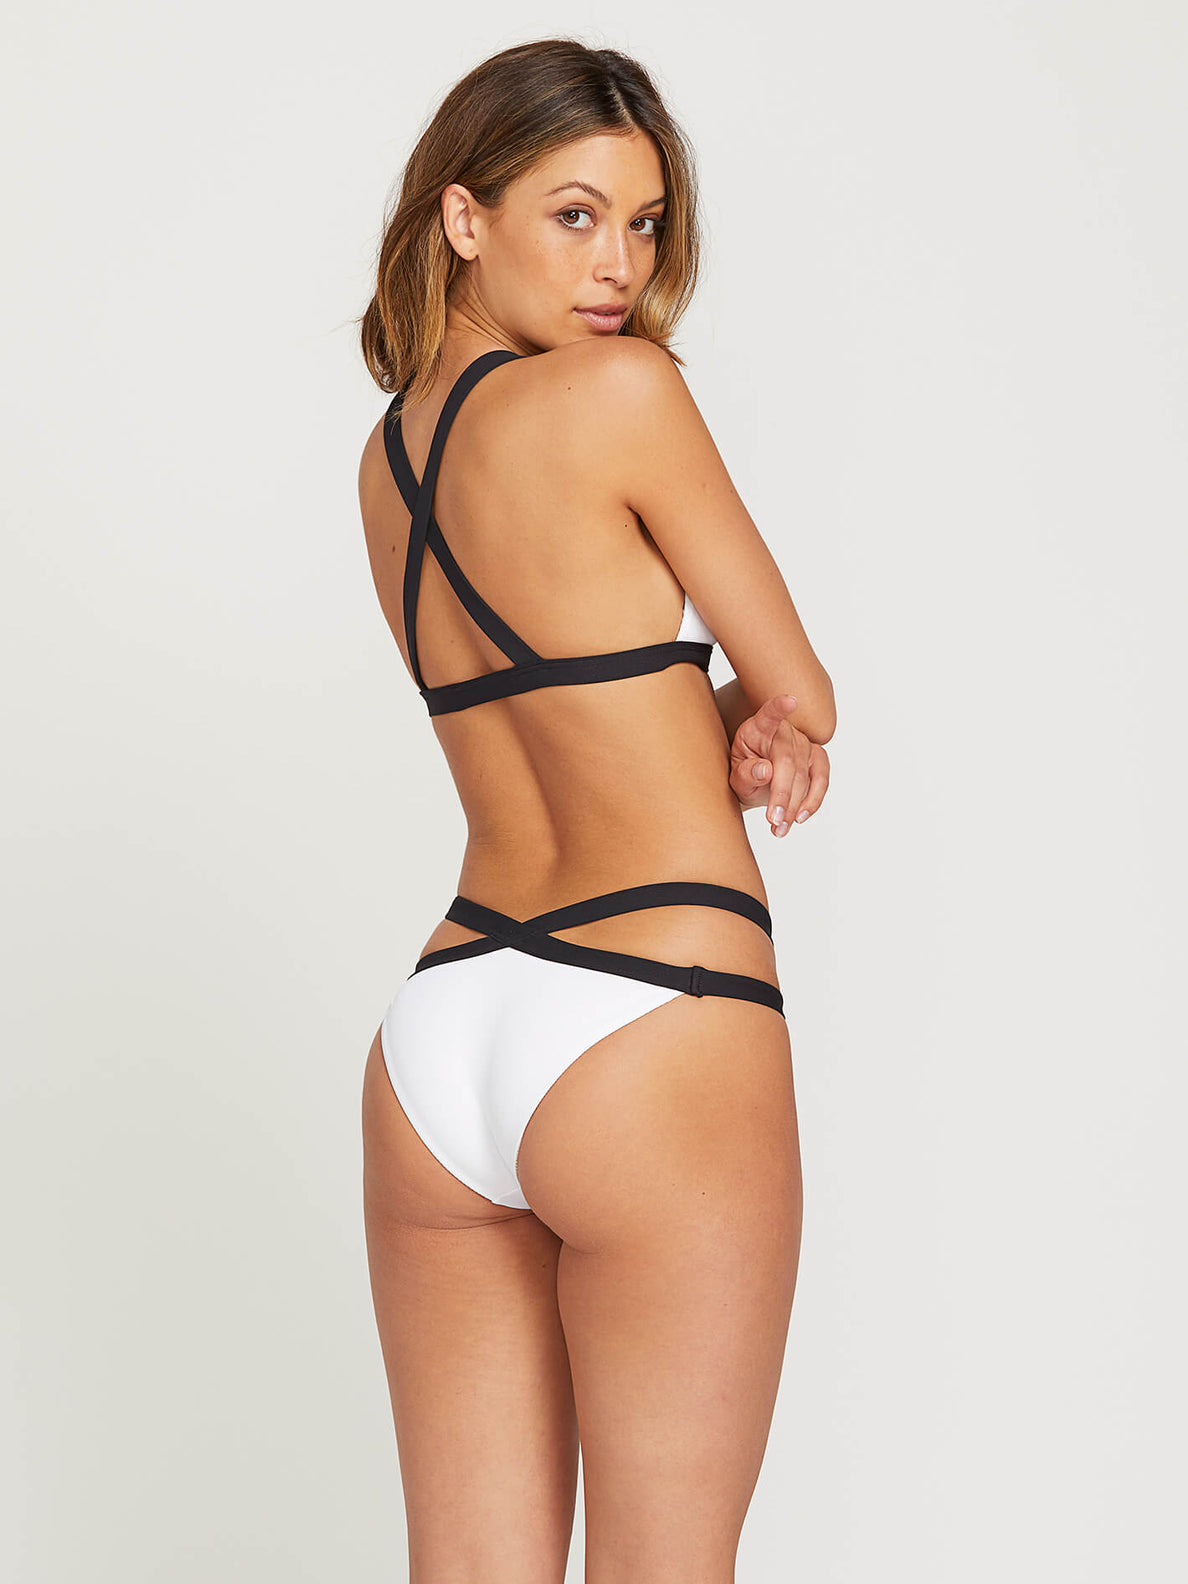 Simply Rib Triangle Top In White, Alternate View